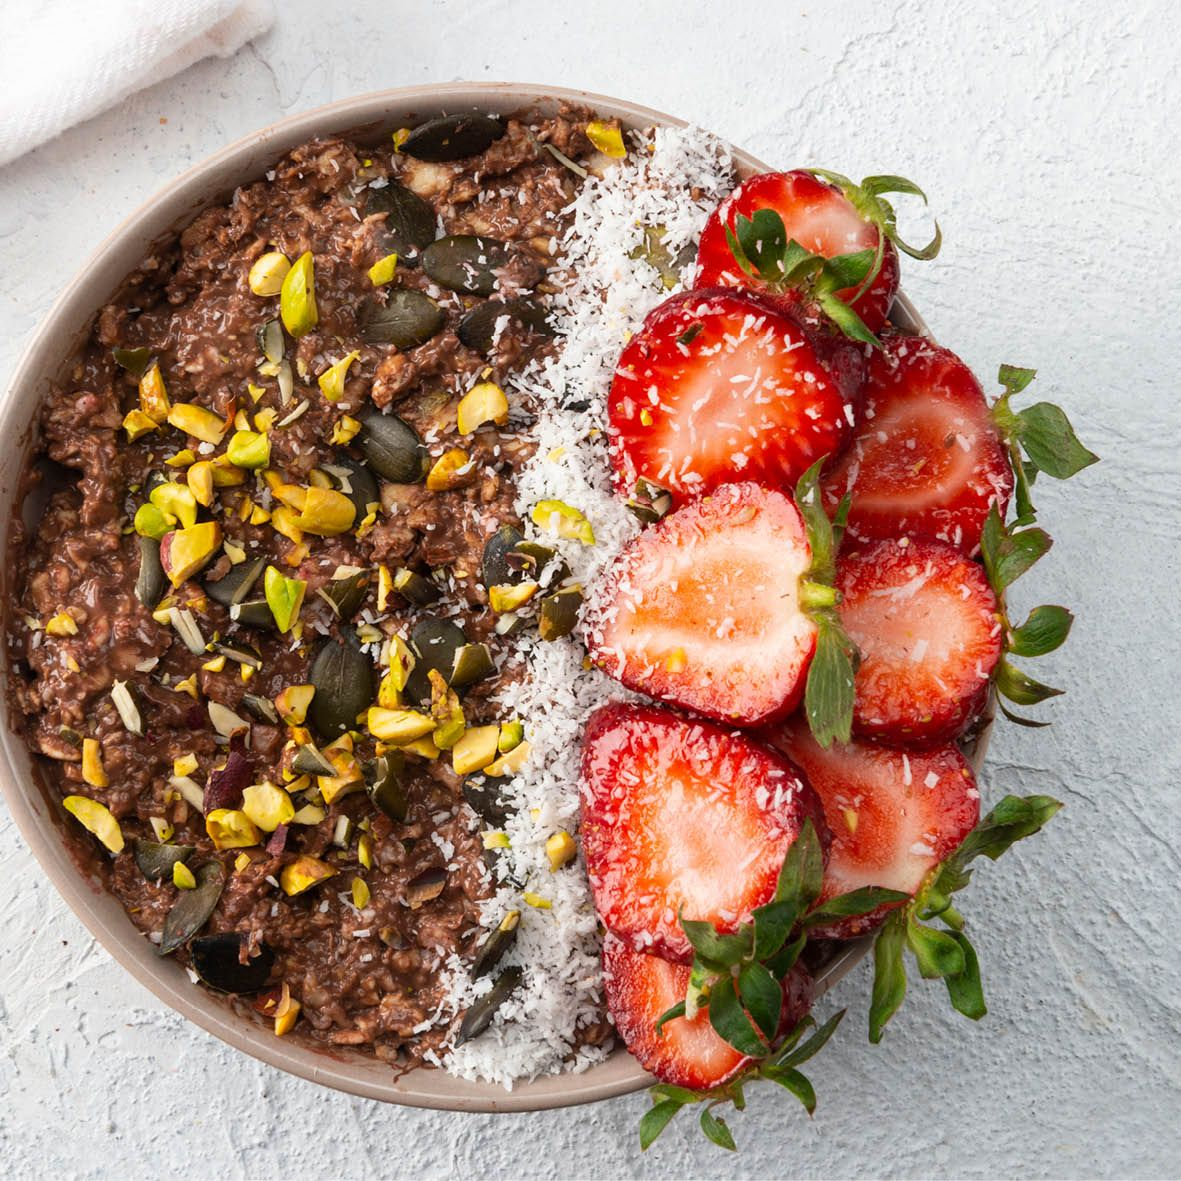 Choc_Coconut_smoothie_bowl_with_Strawberries_and_Pistachios.jpg